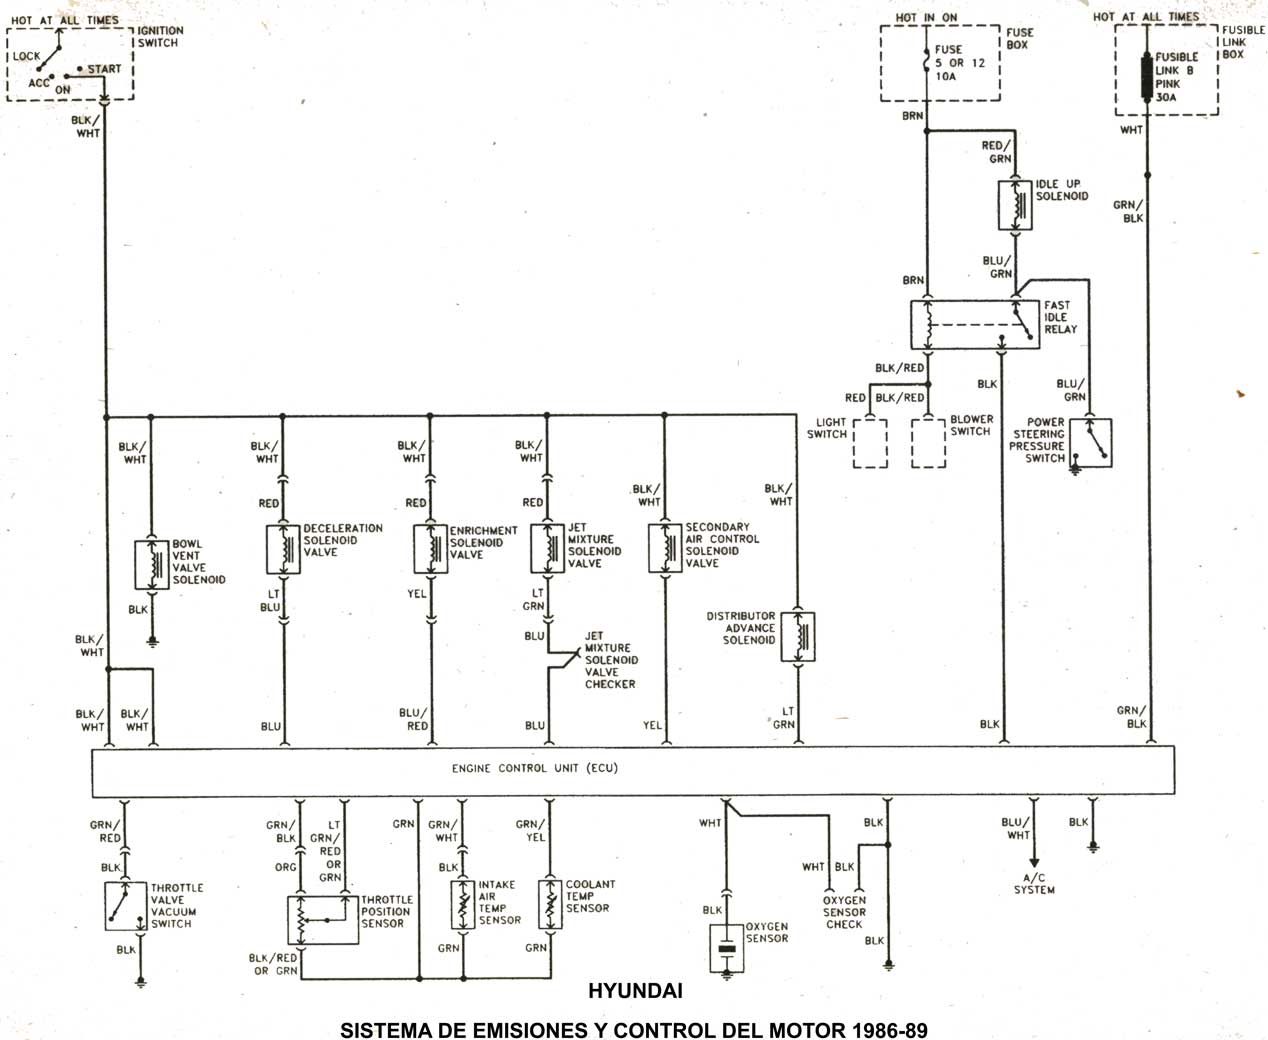 93 nissan sentra engine diagram get free image about wiring diagram